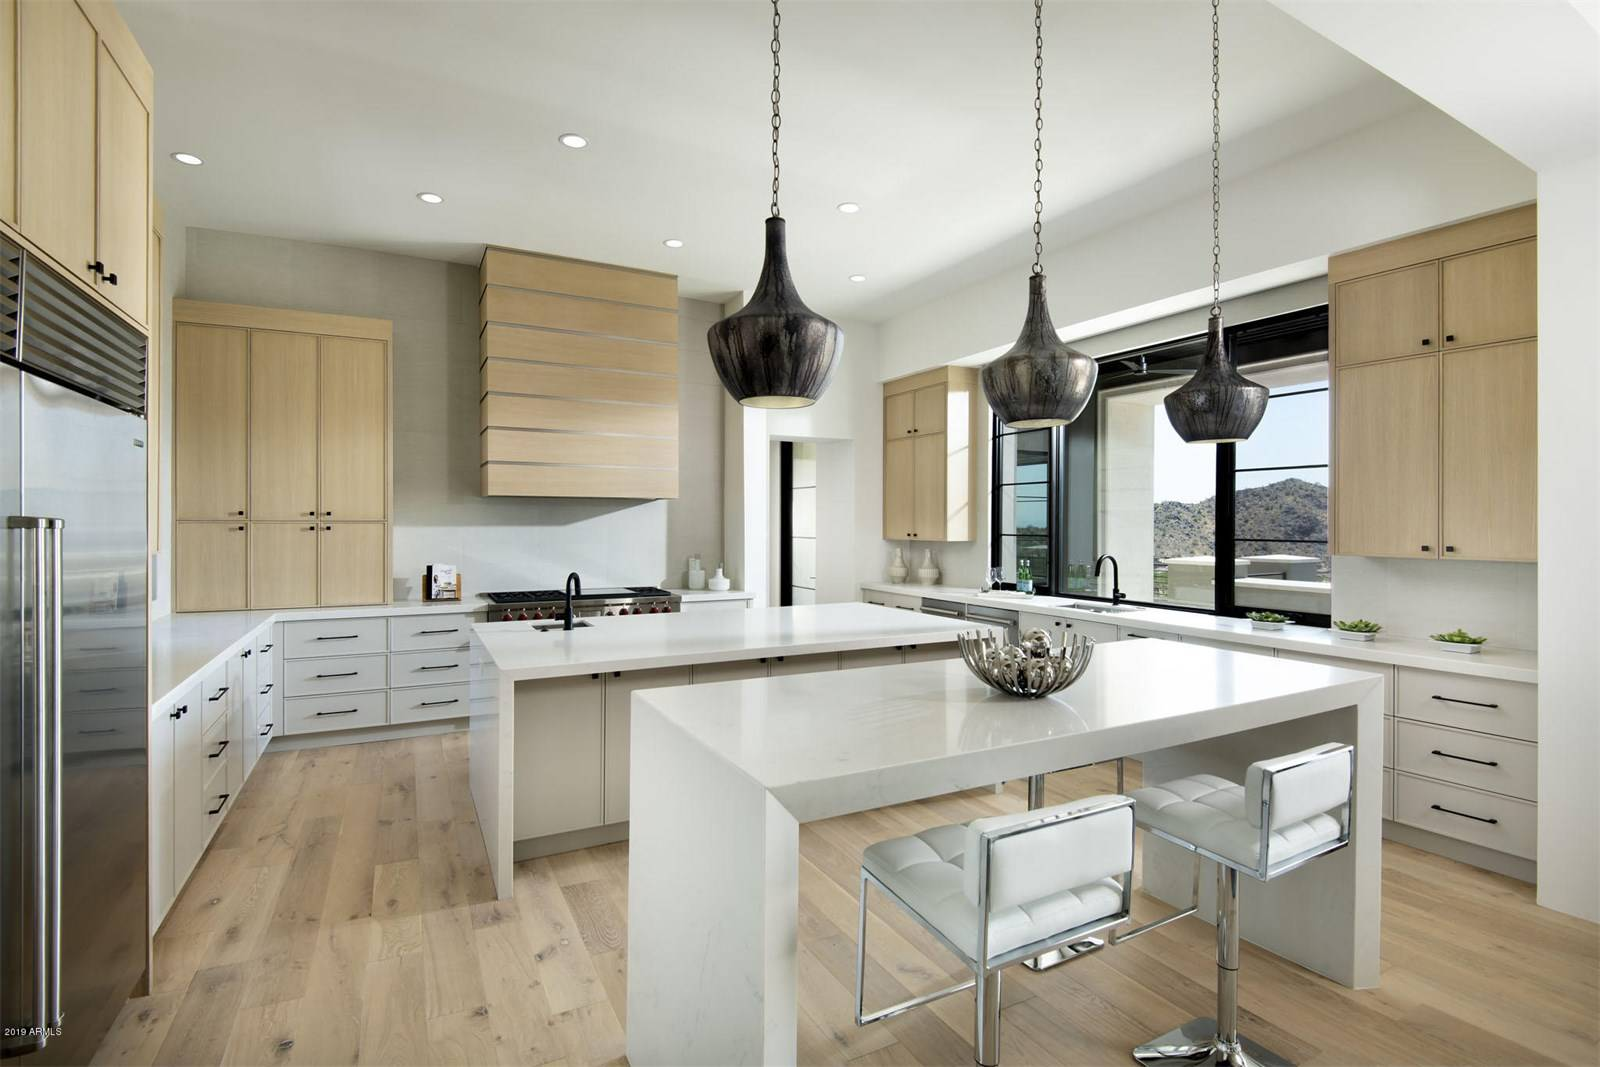 Form Follows Food 8 Homes With Luxury Kitchens Christie S International Real Estate